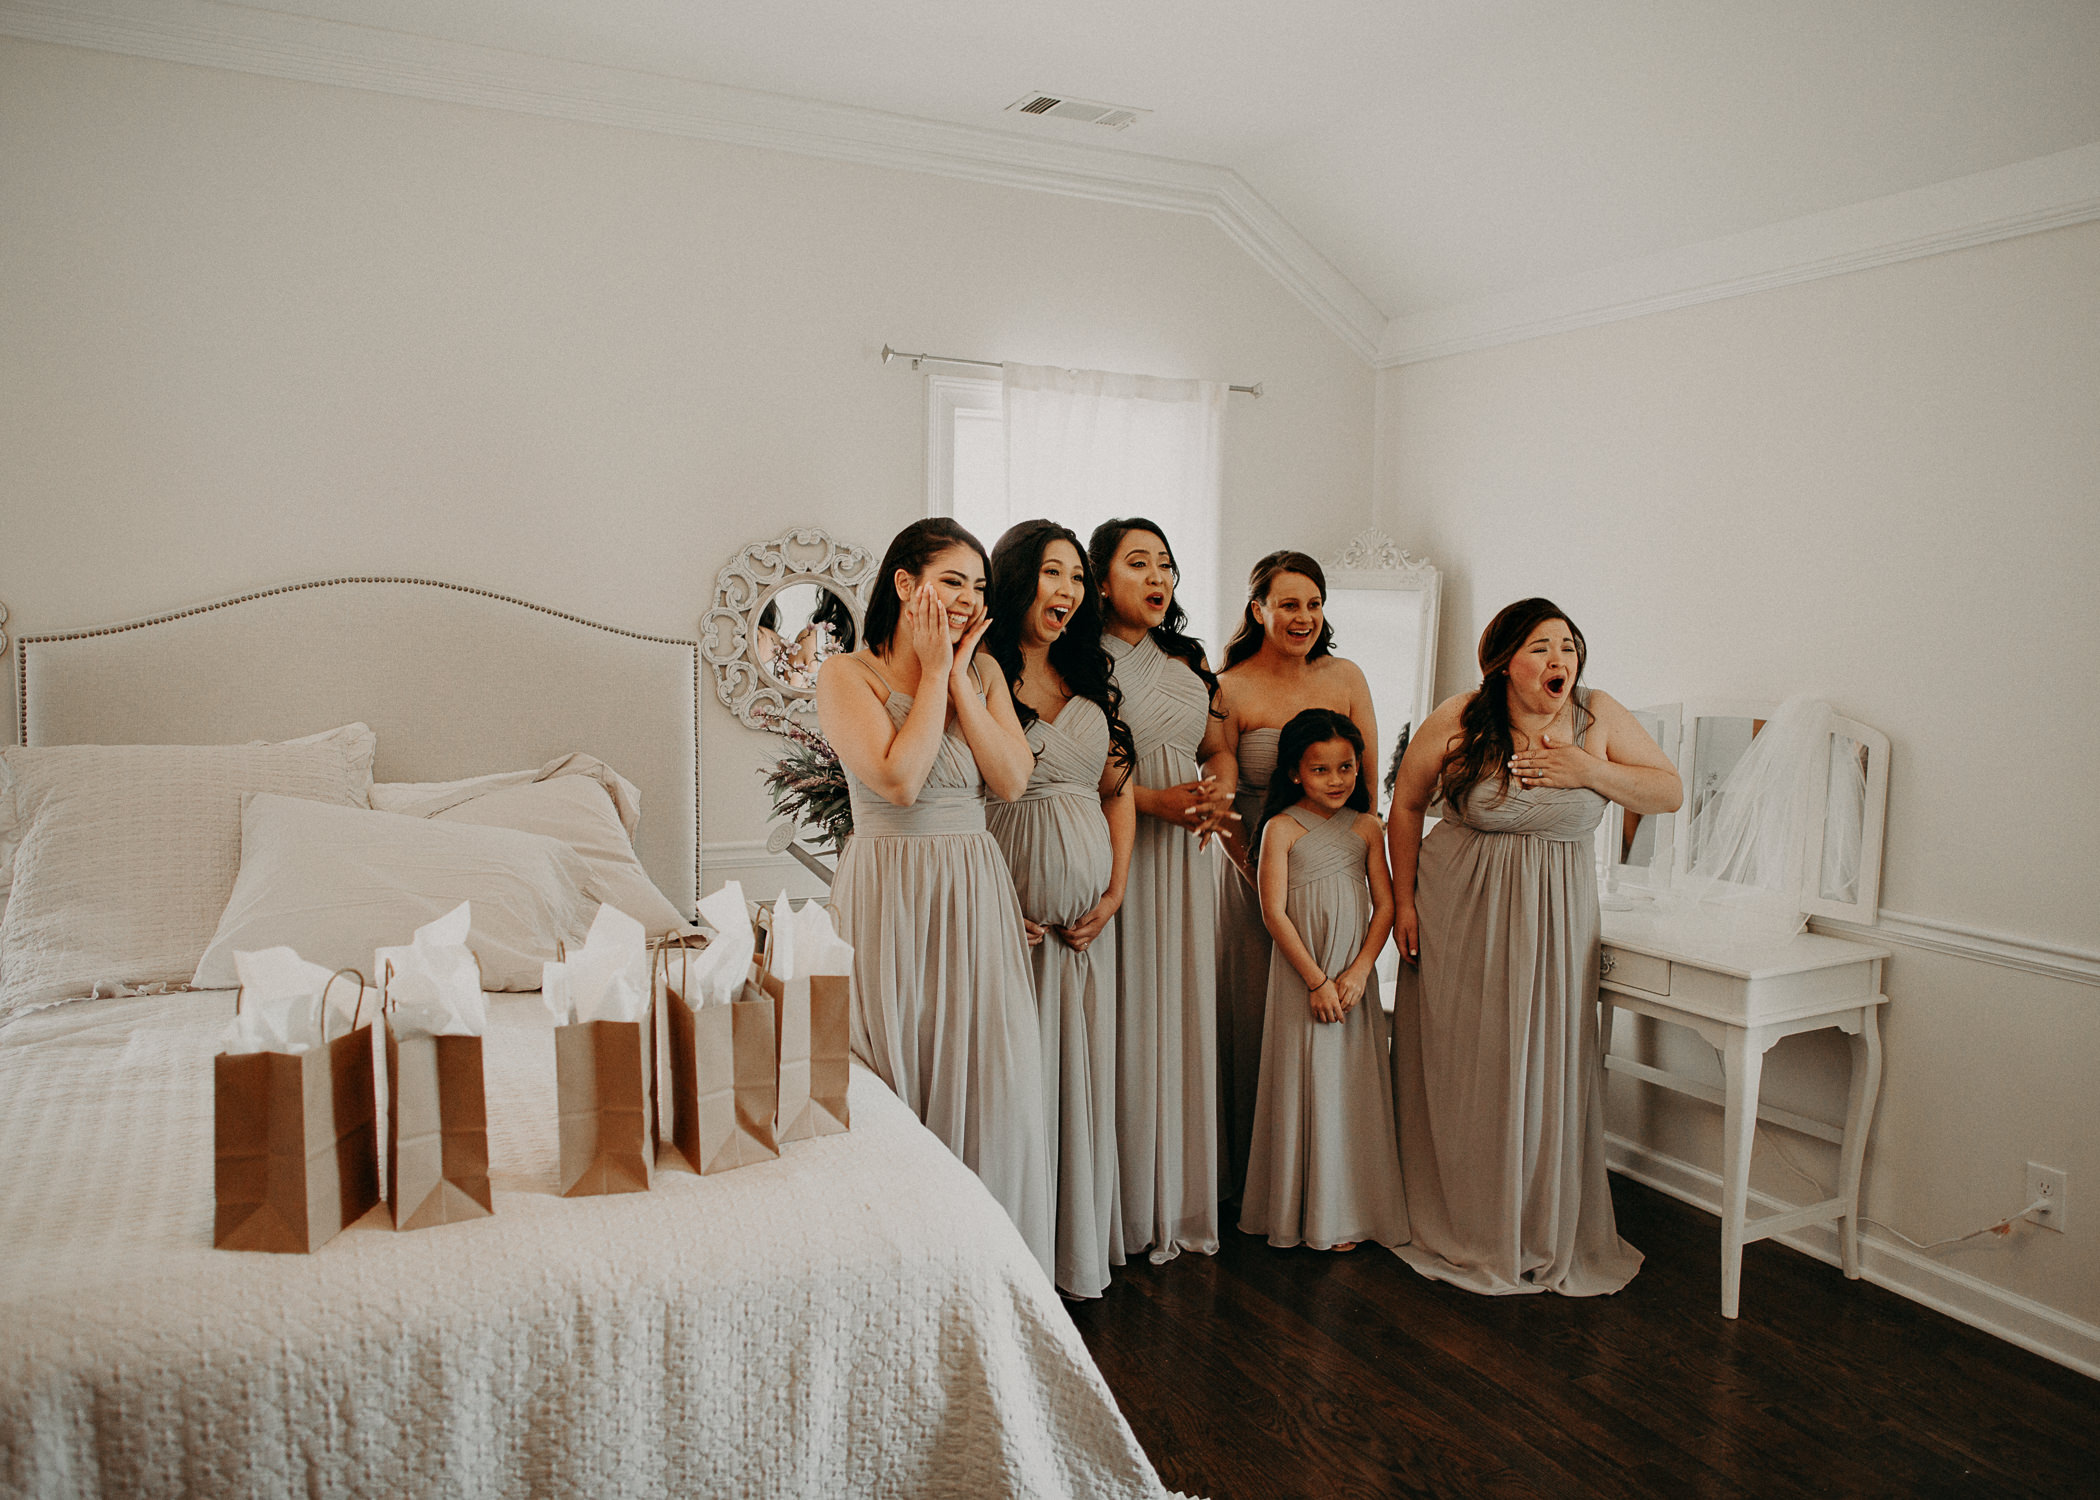 17  - Little River Farms - first look - Atlanta - Wedding Venue - Atlanta Wedding Photographer - Georgia weddings details wedding dress shoes gather groom bridal party .jpg